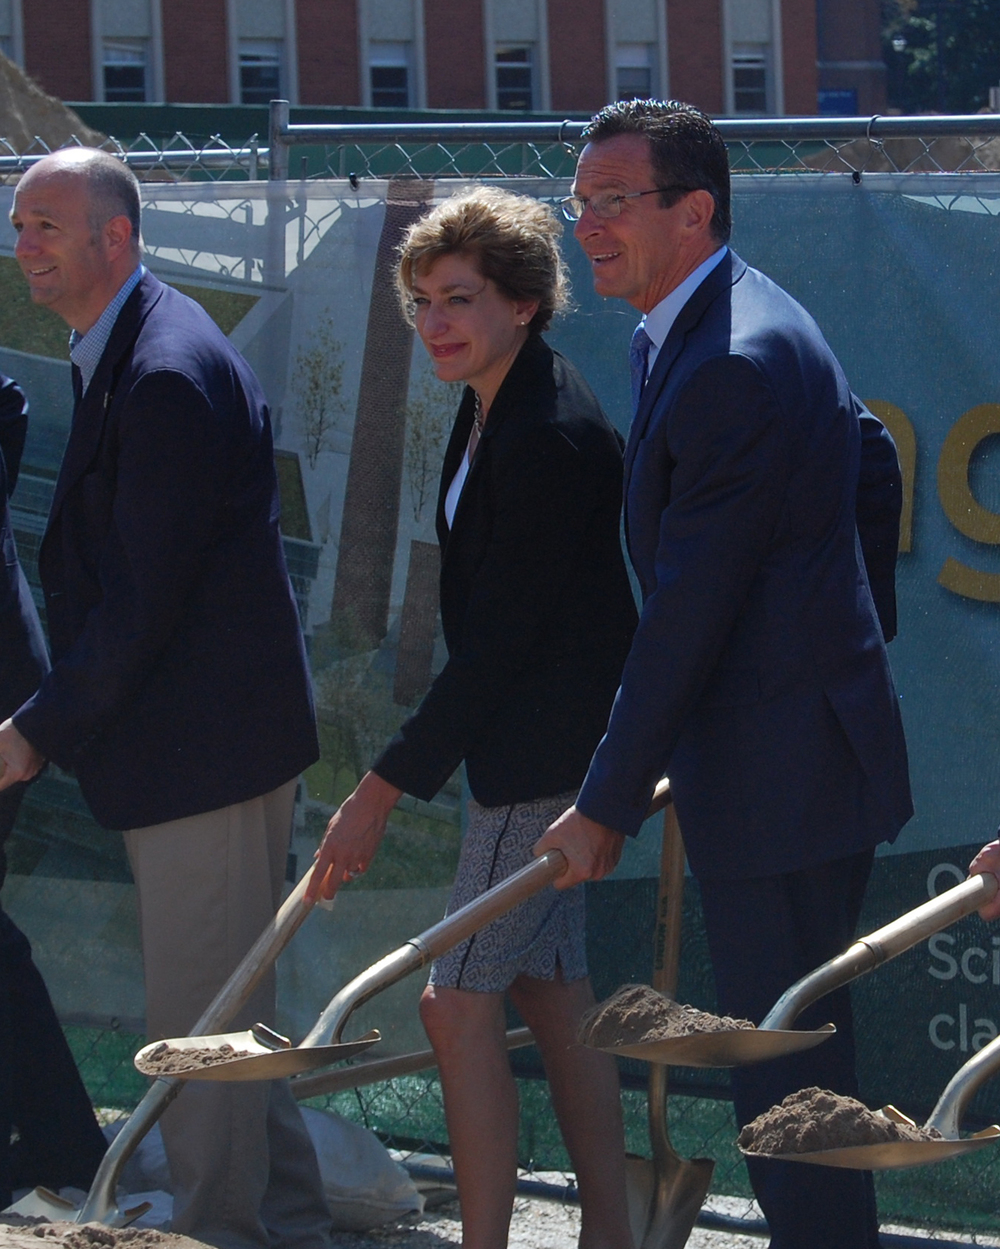 UConn President Susan Herbst and Connecticut Governor Dannel P. Malloy are seen shoveling at the breaking ground of the new engineering and science building on Sept. 9, 2015 (Ashley Maher/The Daily Campus)